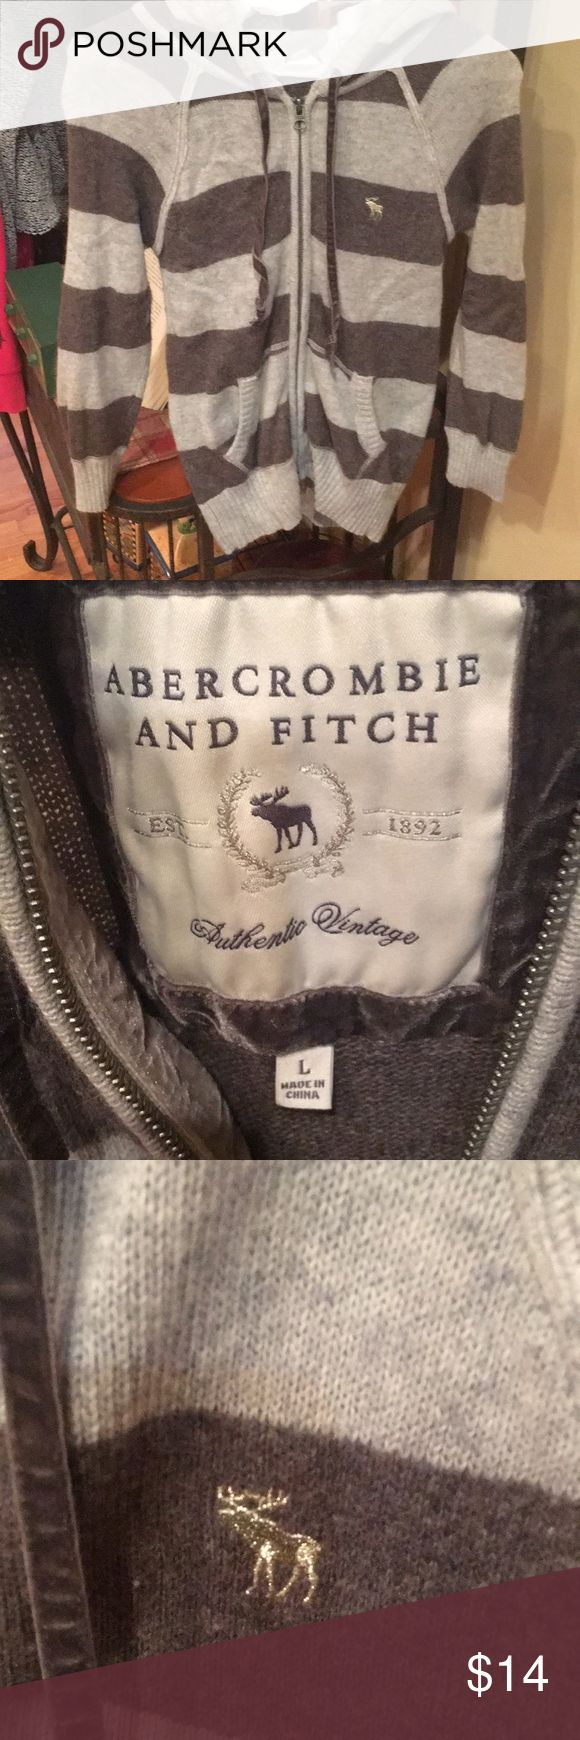 Women's Abercrombie and Fitch hoodie Abercrombie and Fitch hoodie size large good condition. Brown and oatmeal color Abercrombie & Fitch Tops Sweatshirts & Hoodies